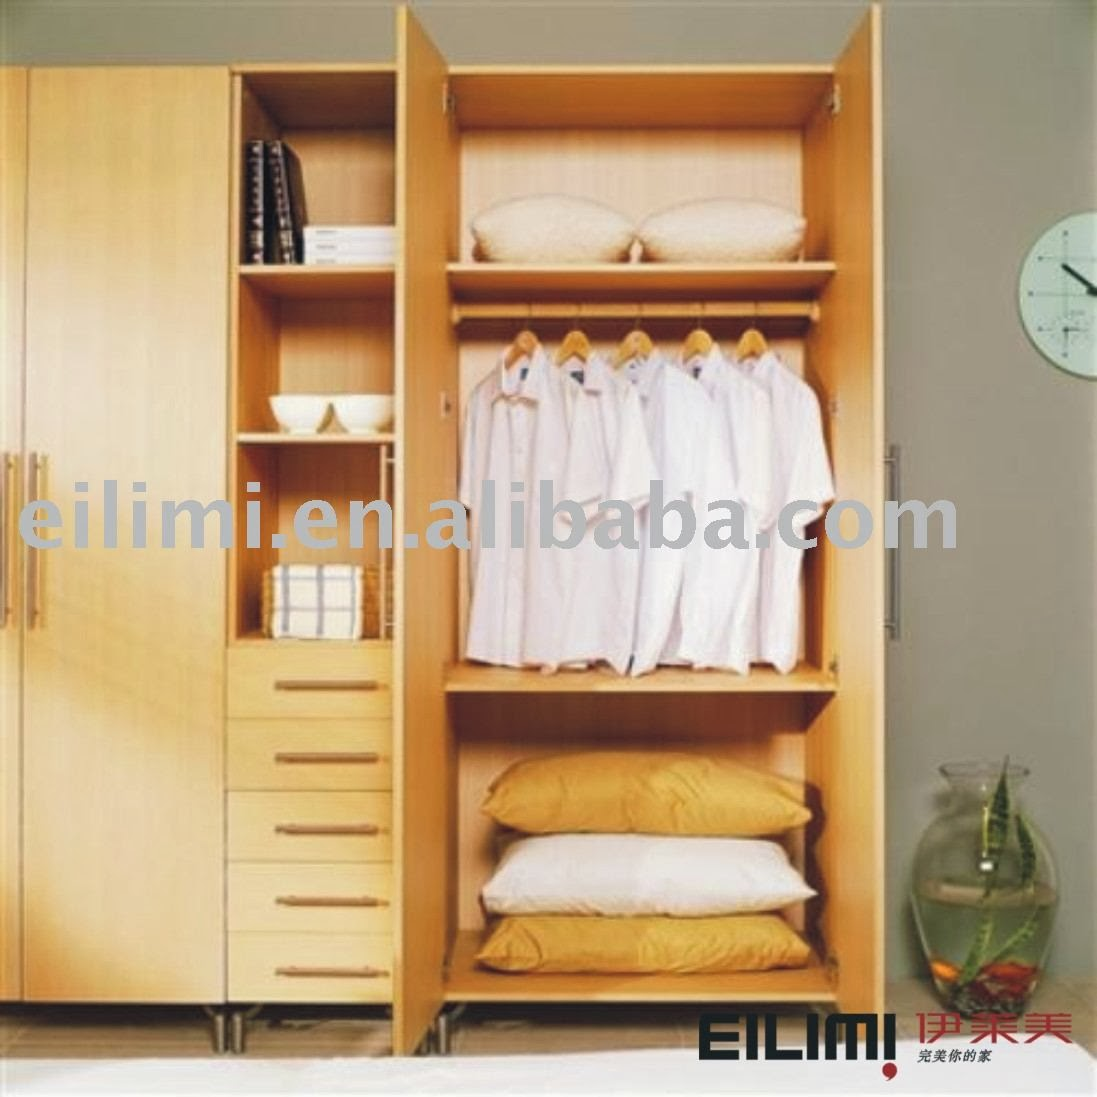 Bedroom cabinet design for Bedroom cabinet ideas